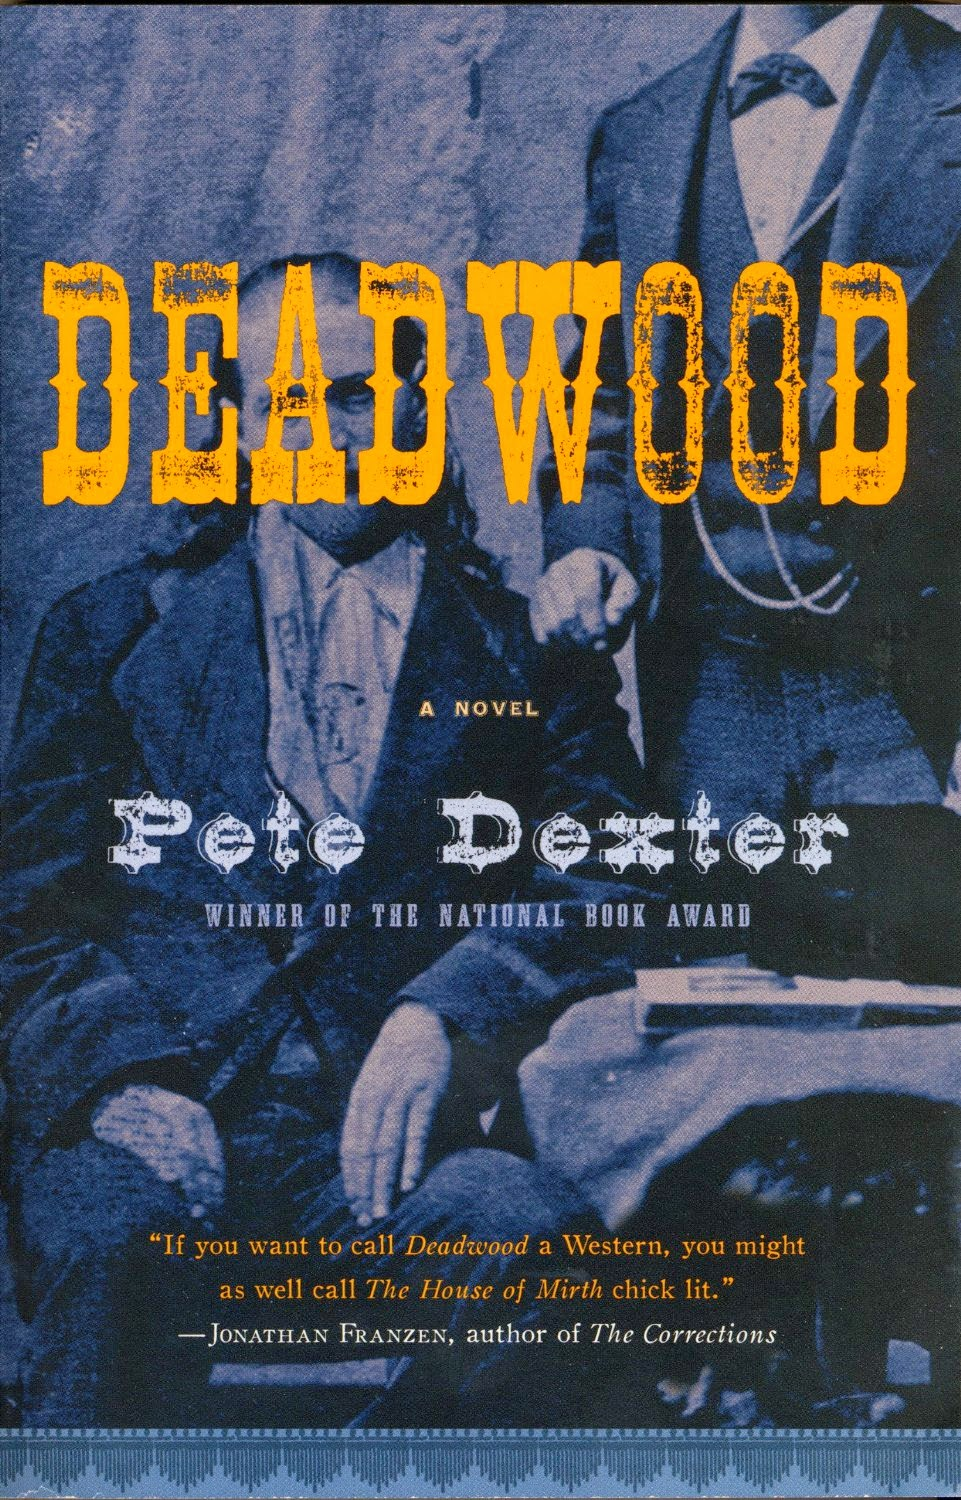 http://www.amazon.com/Deadwood-Vintage-Contemporaries-Pete-Dexter-ebook/dp/B00FUZQZ1S/ref=la_B000APVGNU_1_1?s=books&ie=UTF8&qid=1408500062&sr=1-1